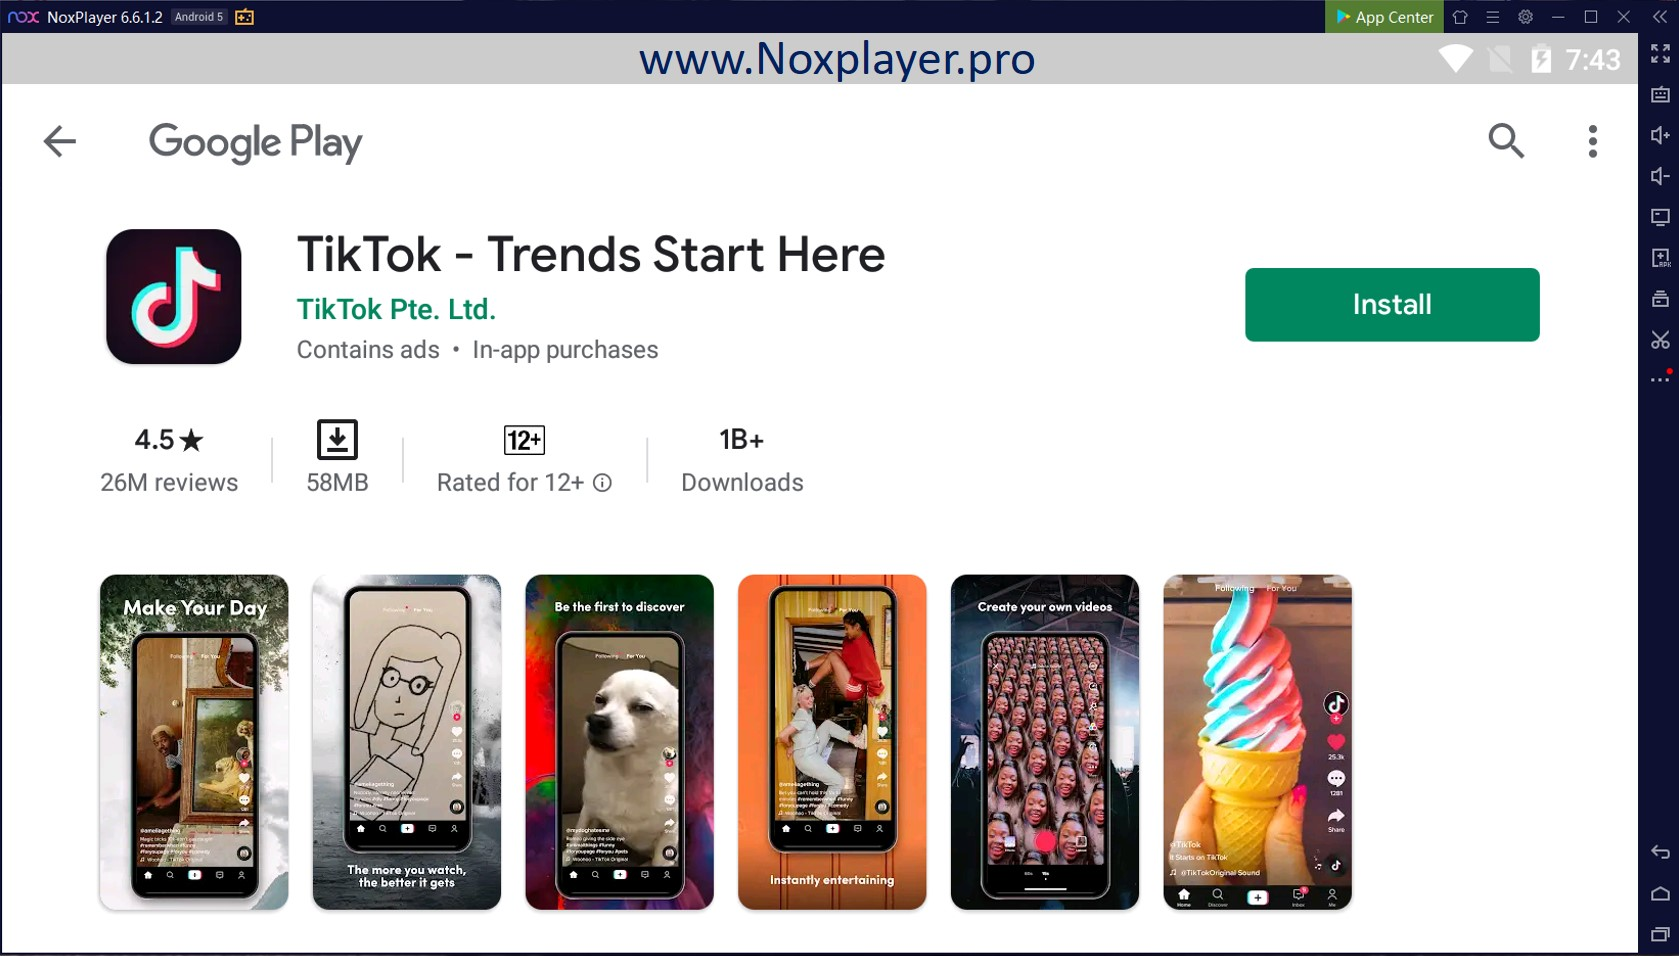 Tiktok for PC with NoxPlayer